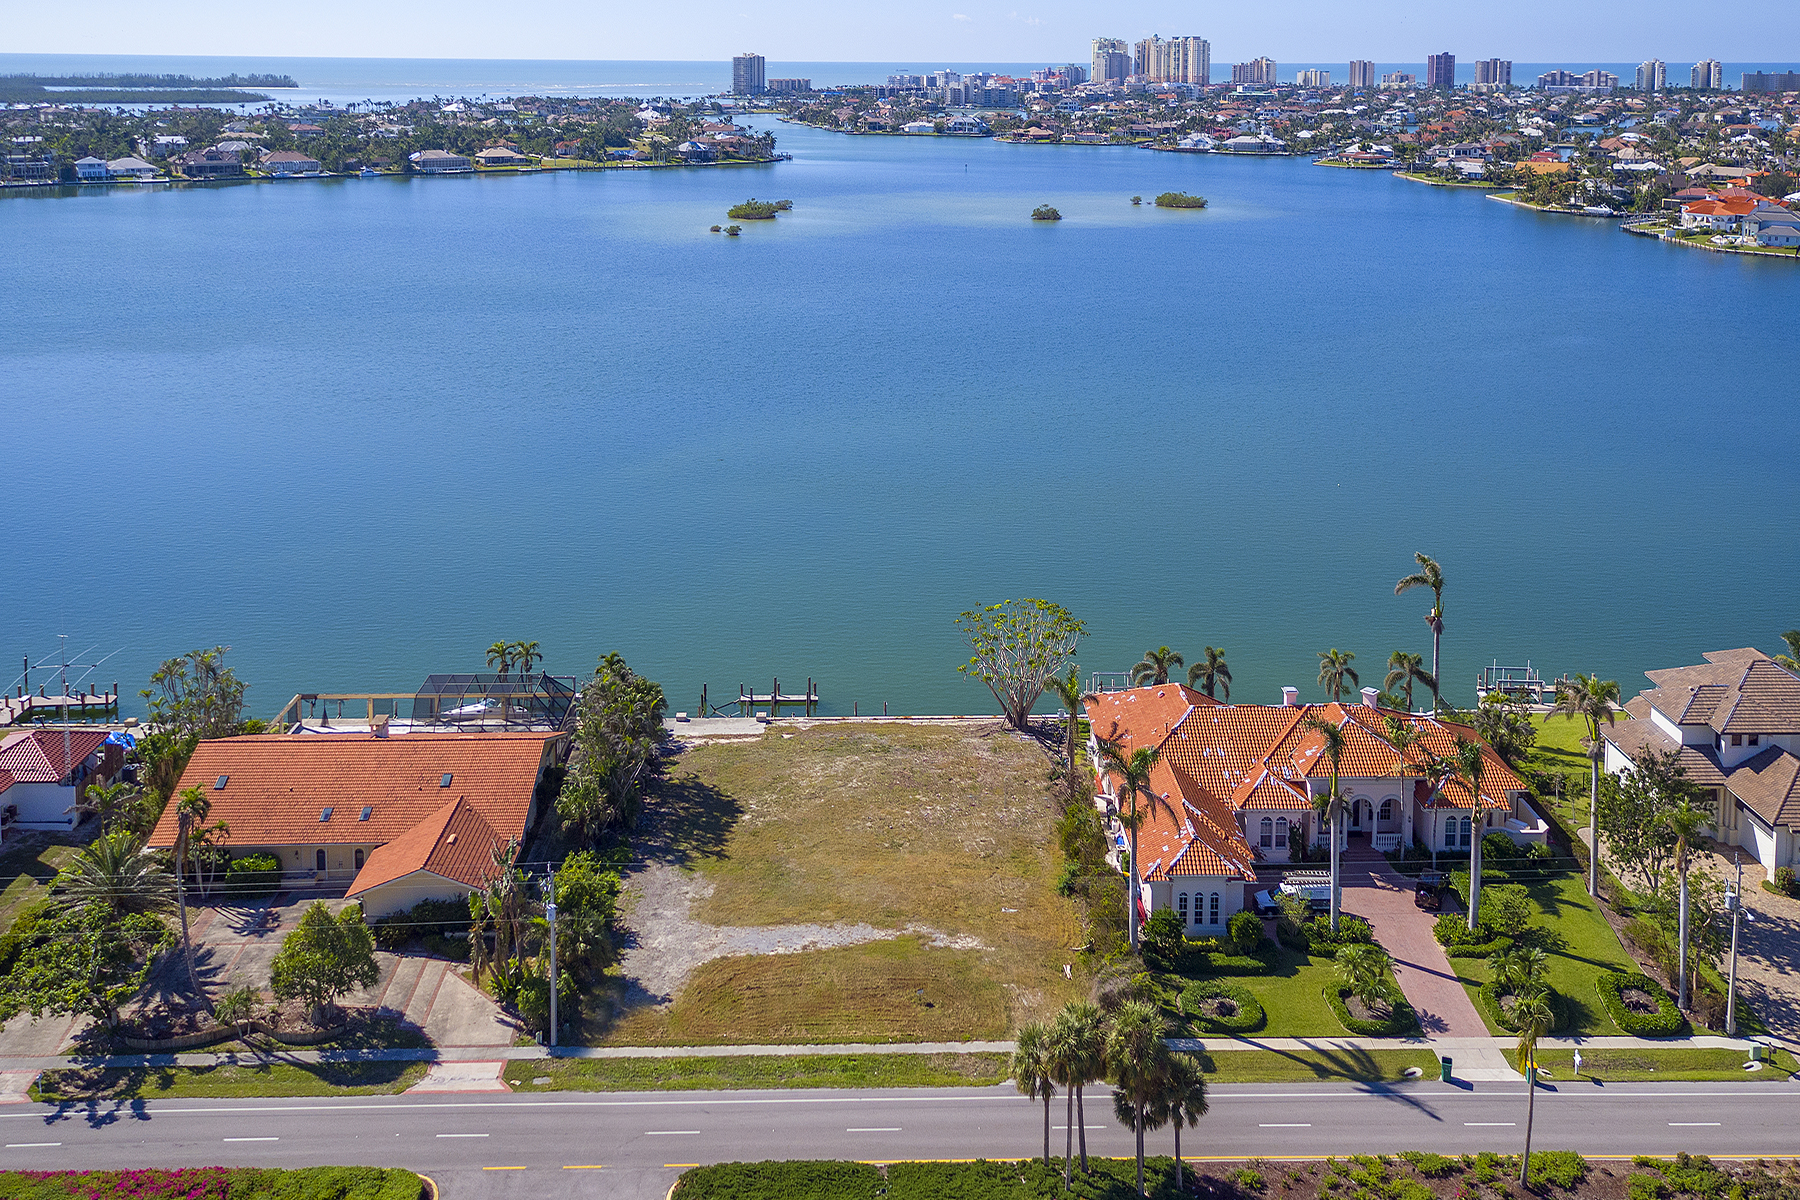 Land for Sale at MARCO ISLAND 580 Barfield Dr S, Marco Island, Florida, 34145 United States